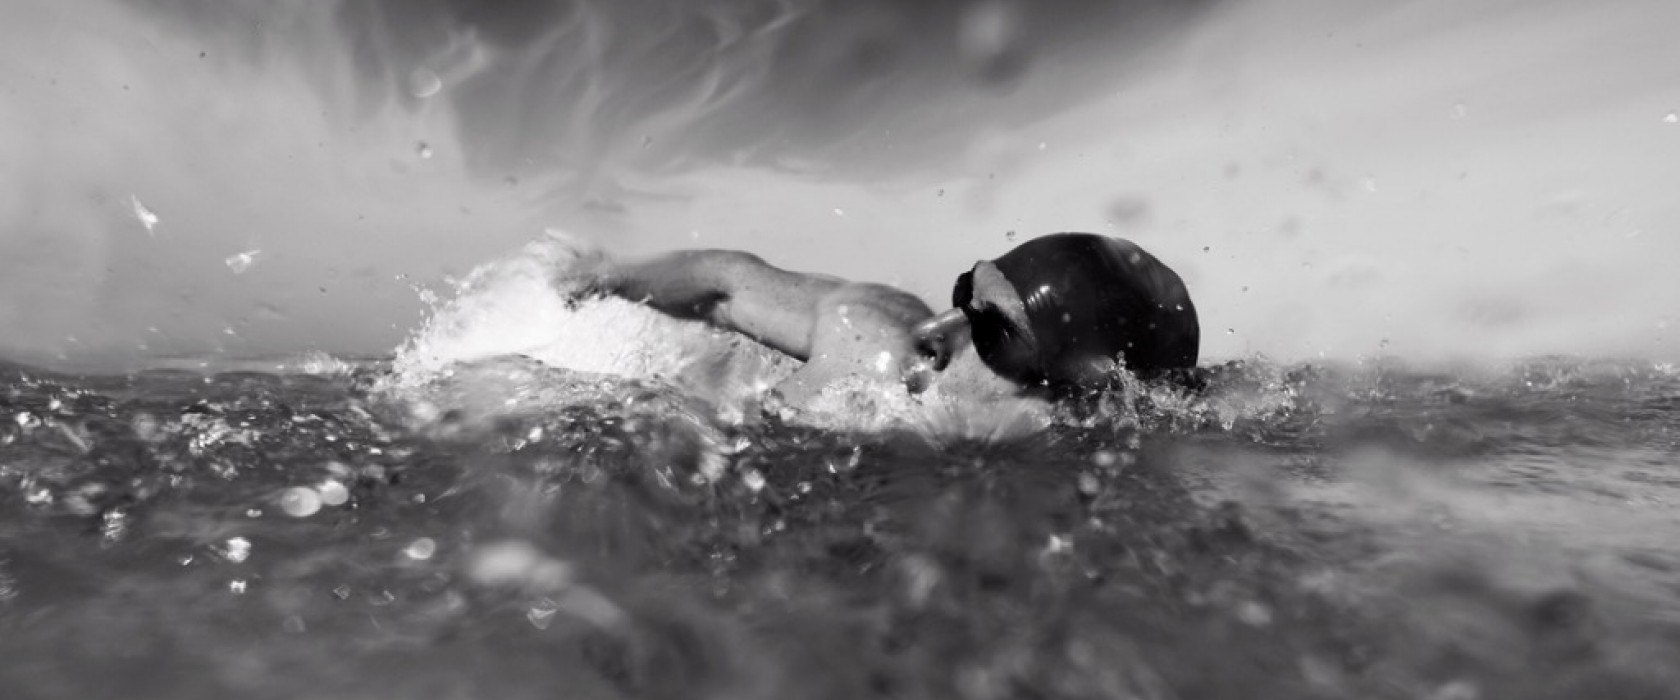 long-distance-swimmer-picture-id171308120-1680x700